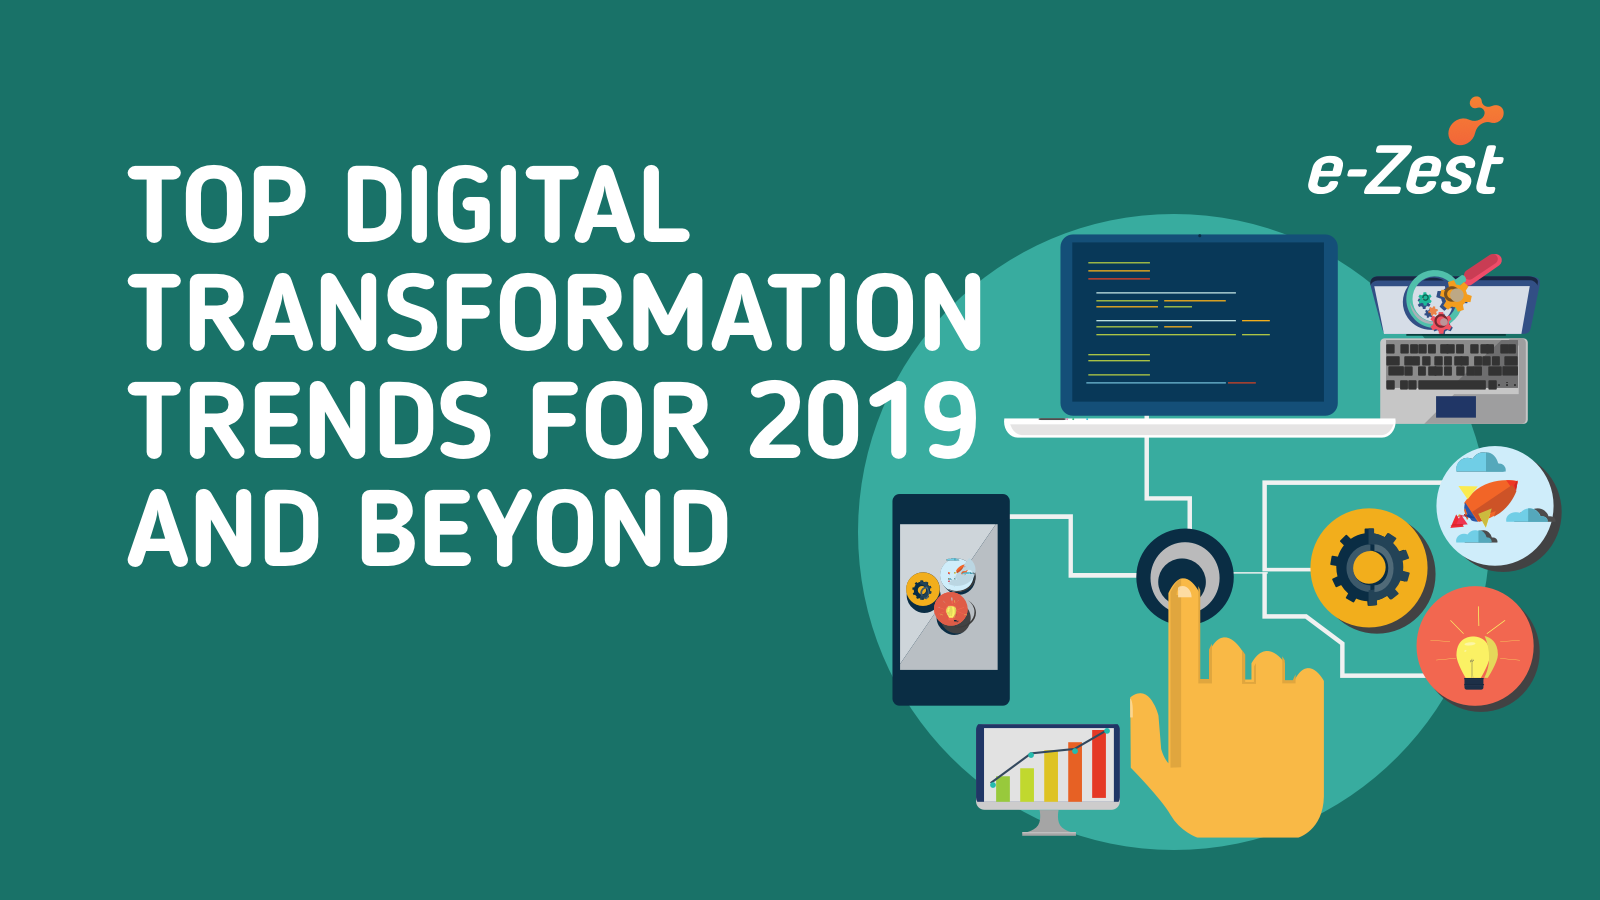 Top Digital Transformation Trends for 2019 and Beyond